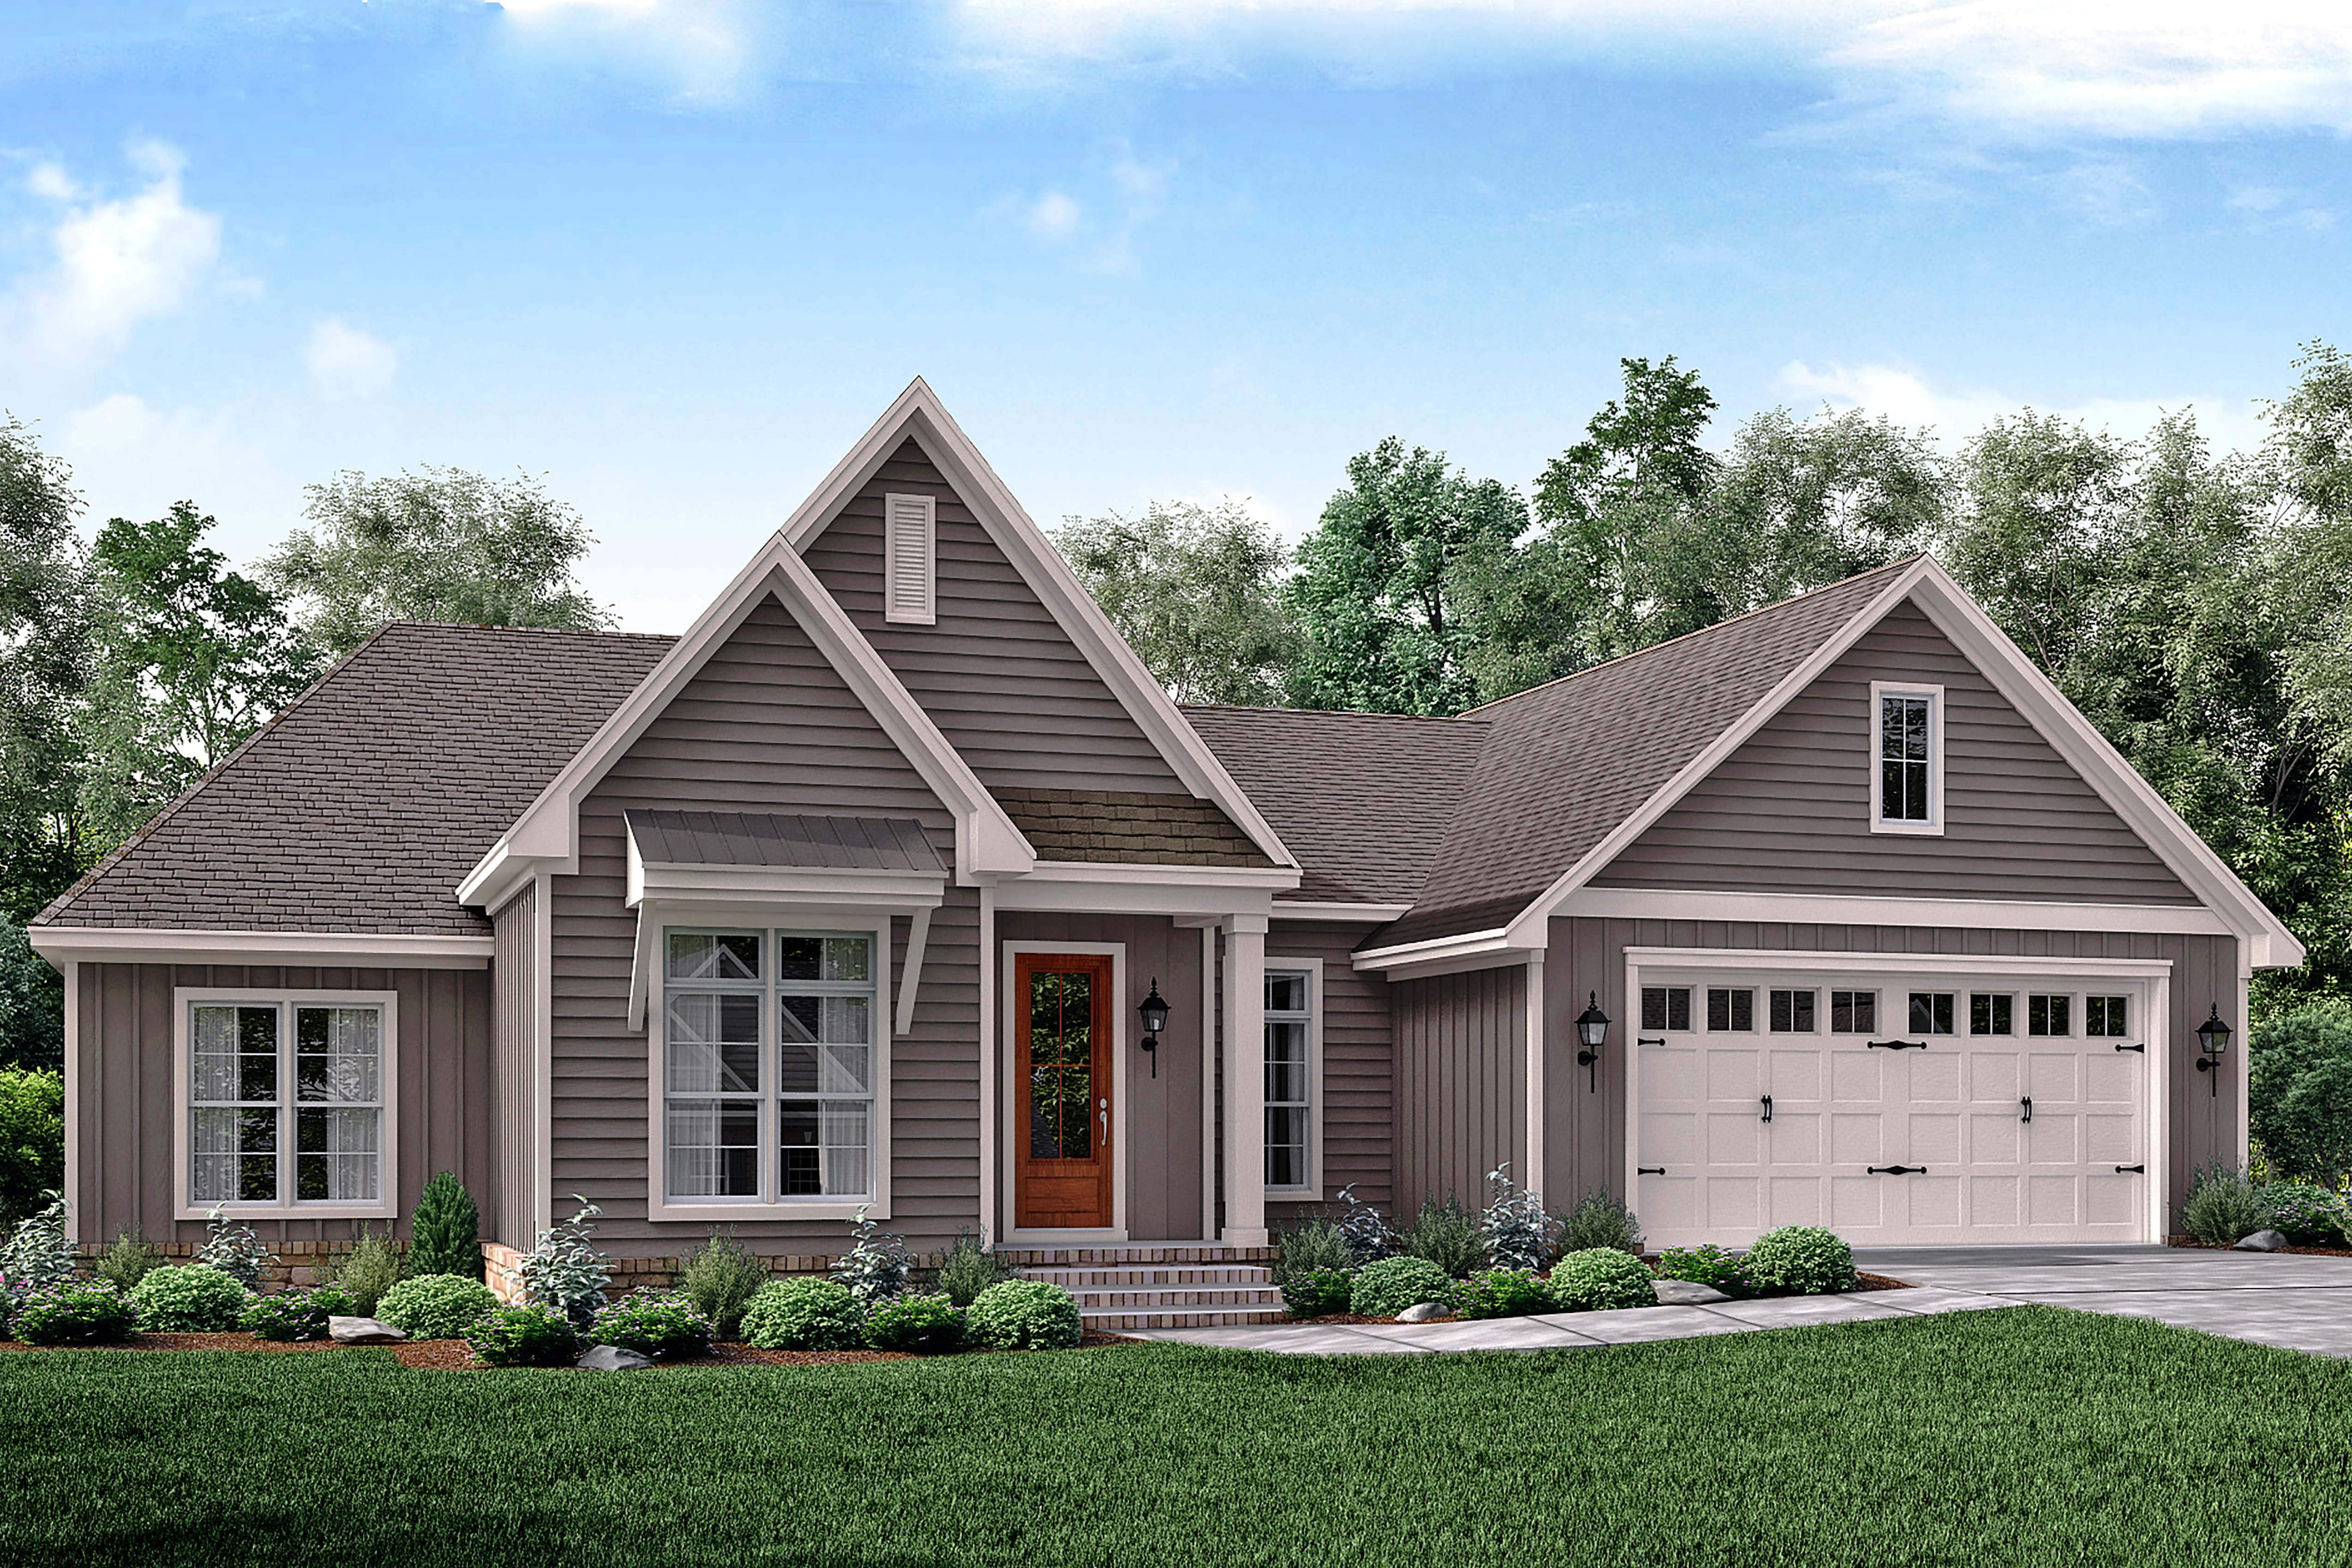 3 Bedrm 2019 Sq Ft Traditional House Plan 1421178